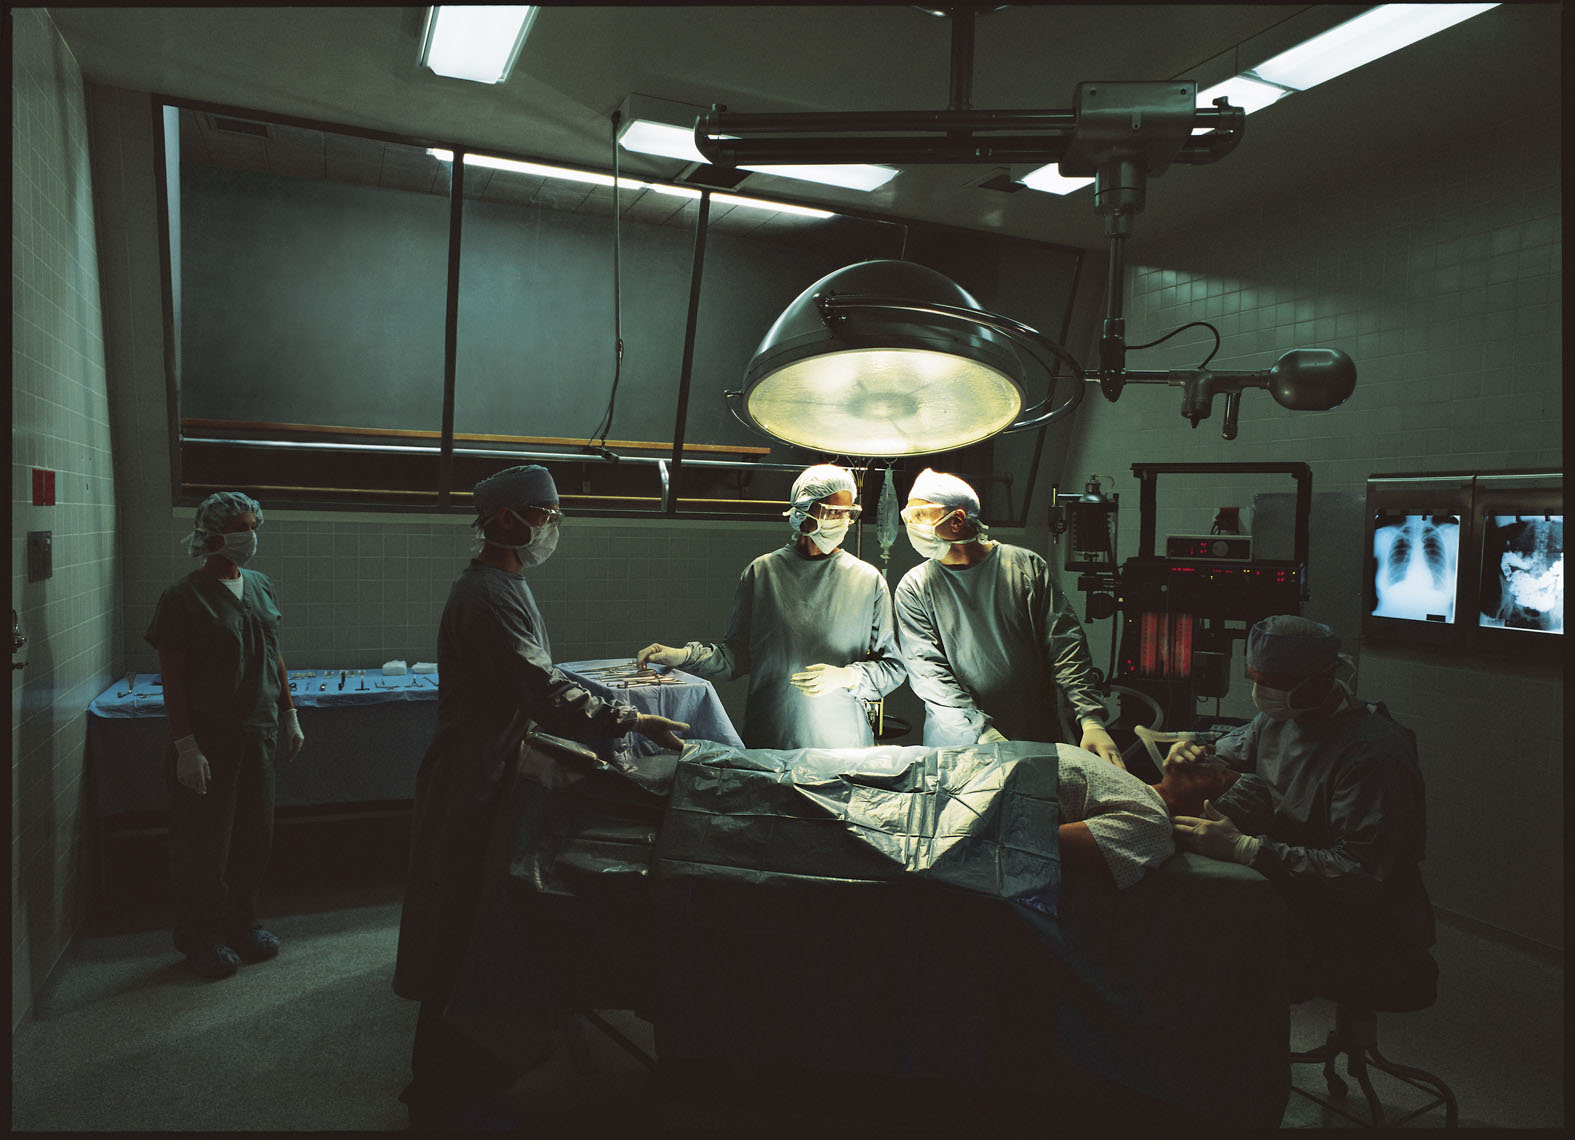 surgeons operating on patients documentary